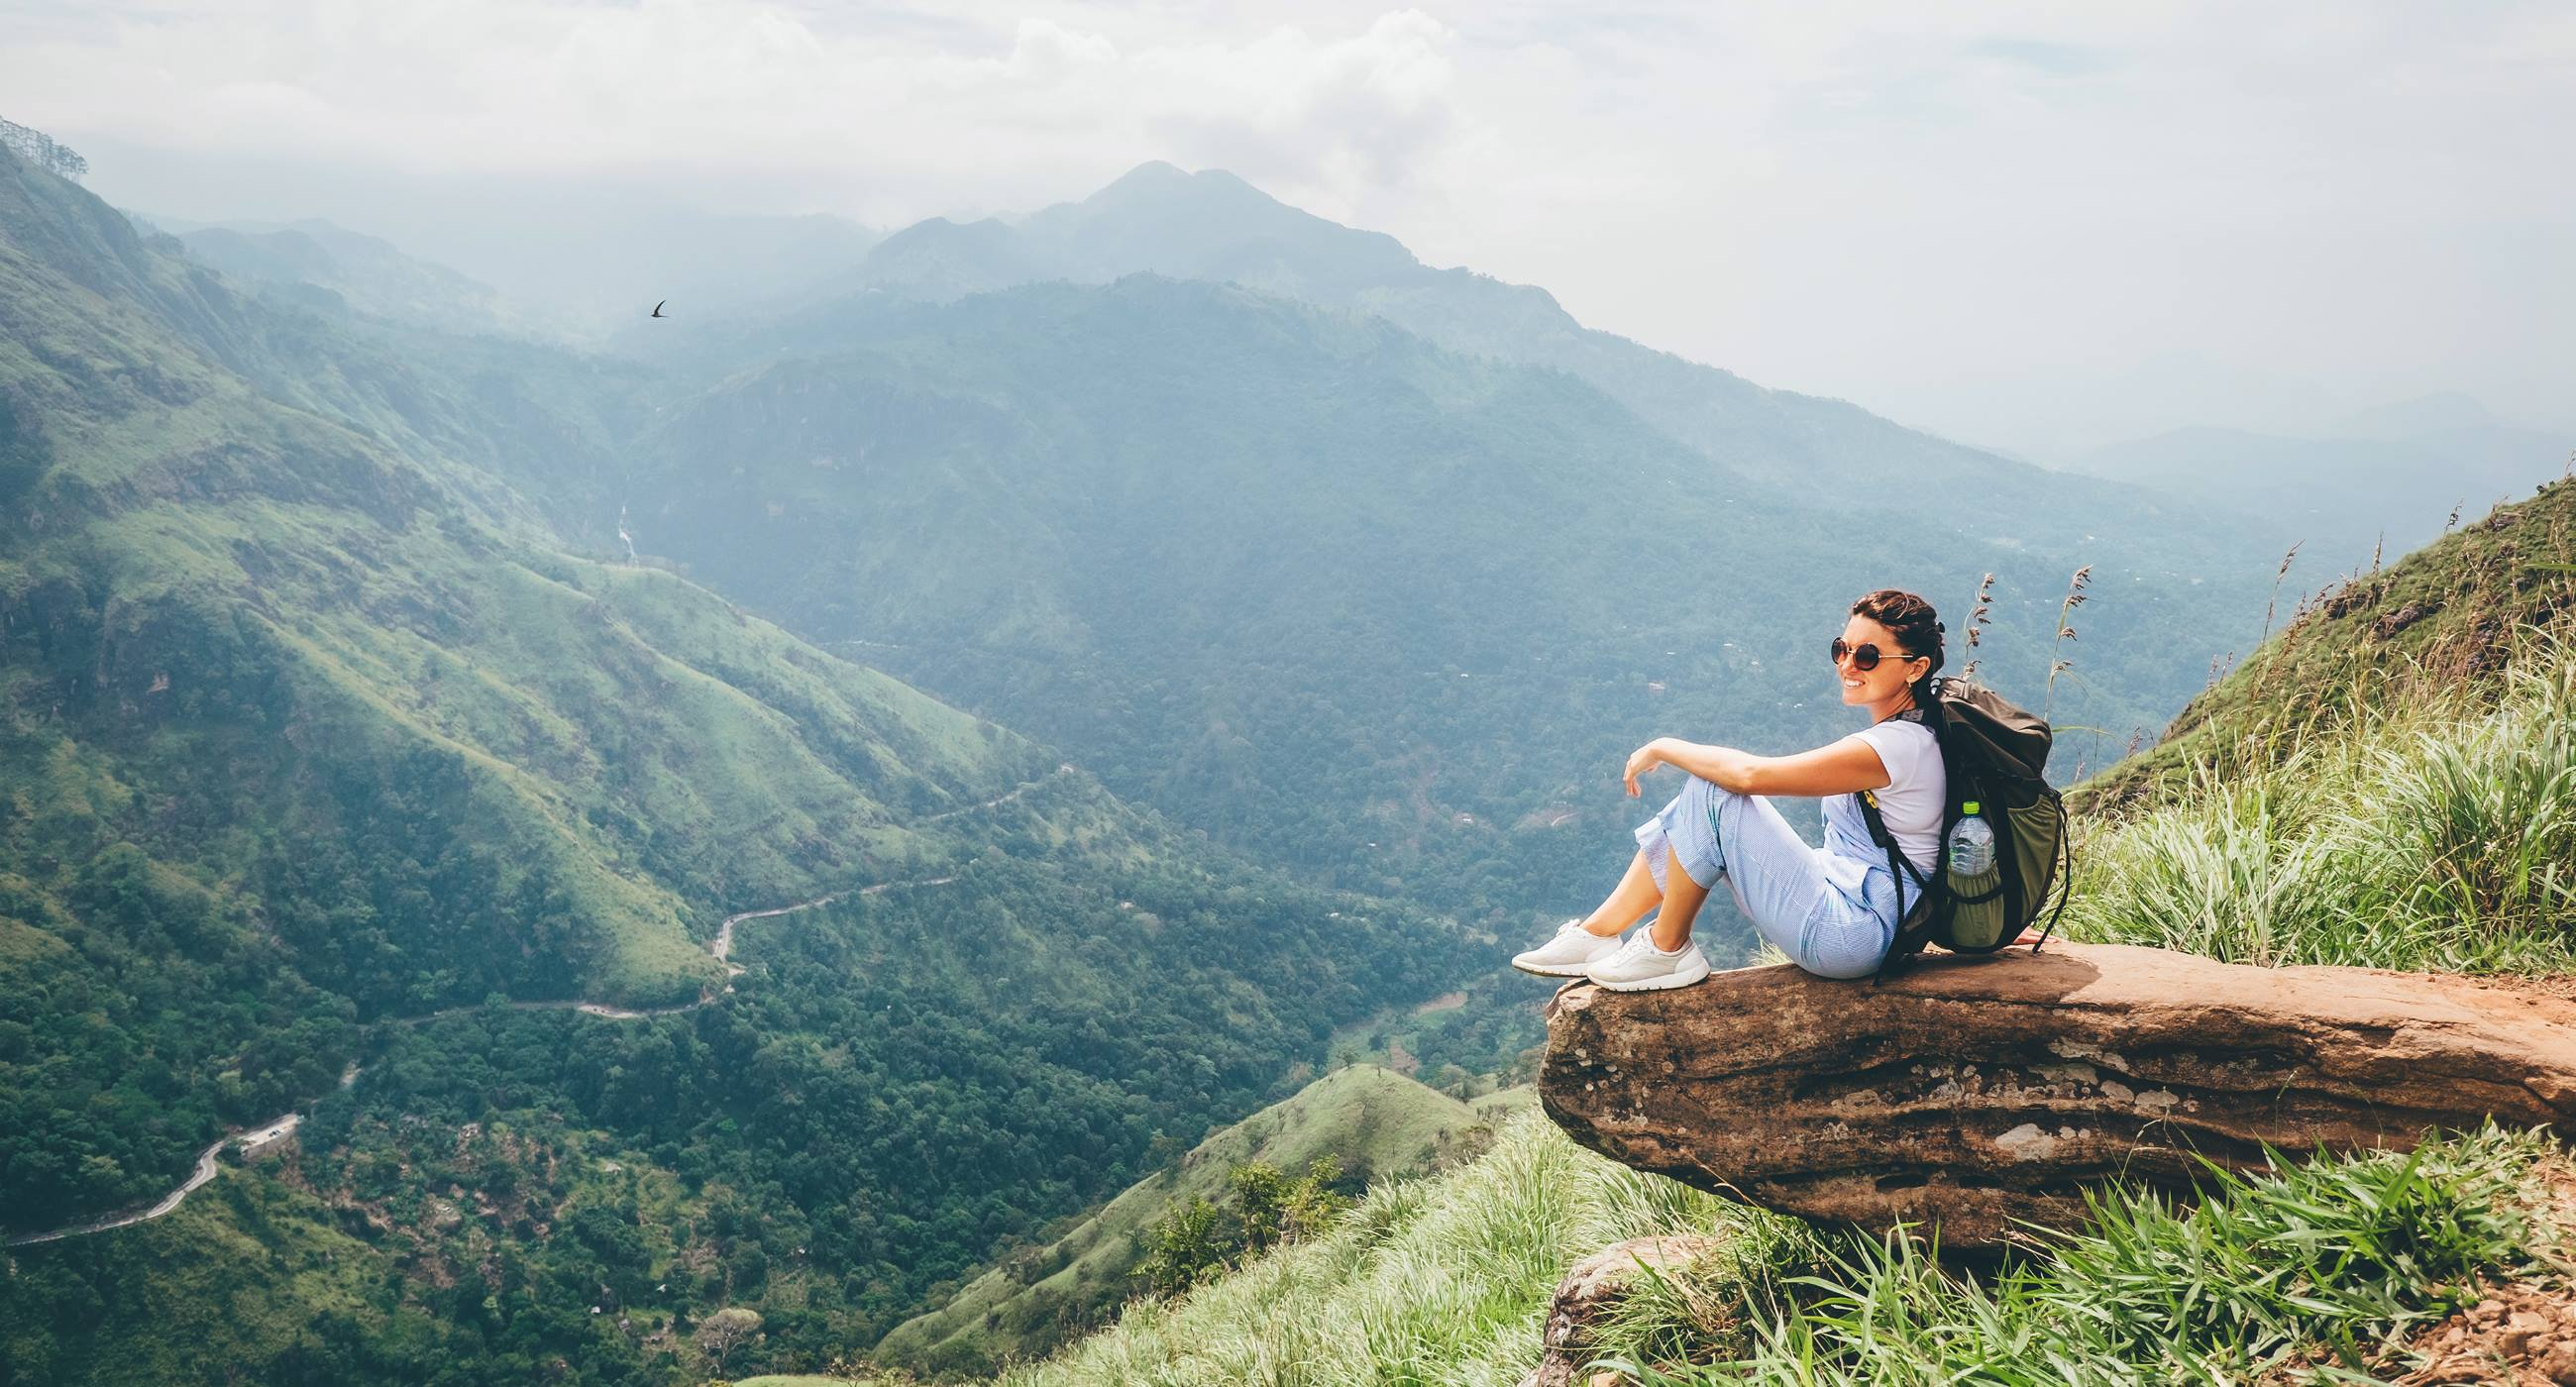 Lady-sitting-on-a-rock-looking-at-the-view-travelling-solo